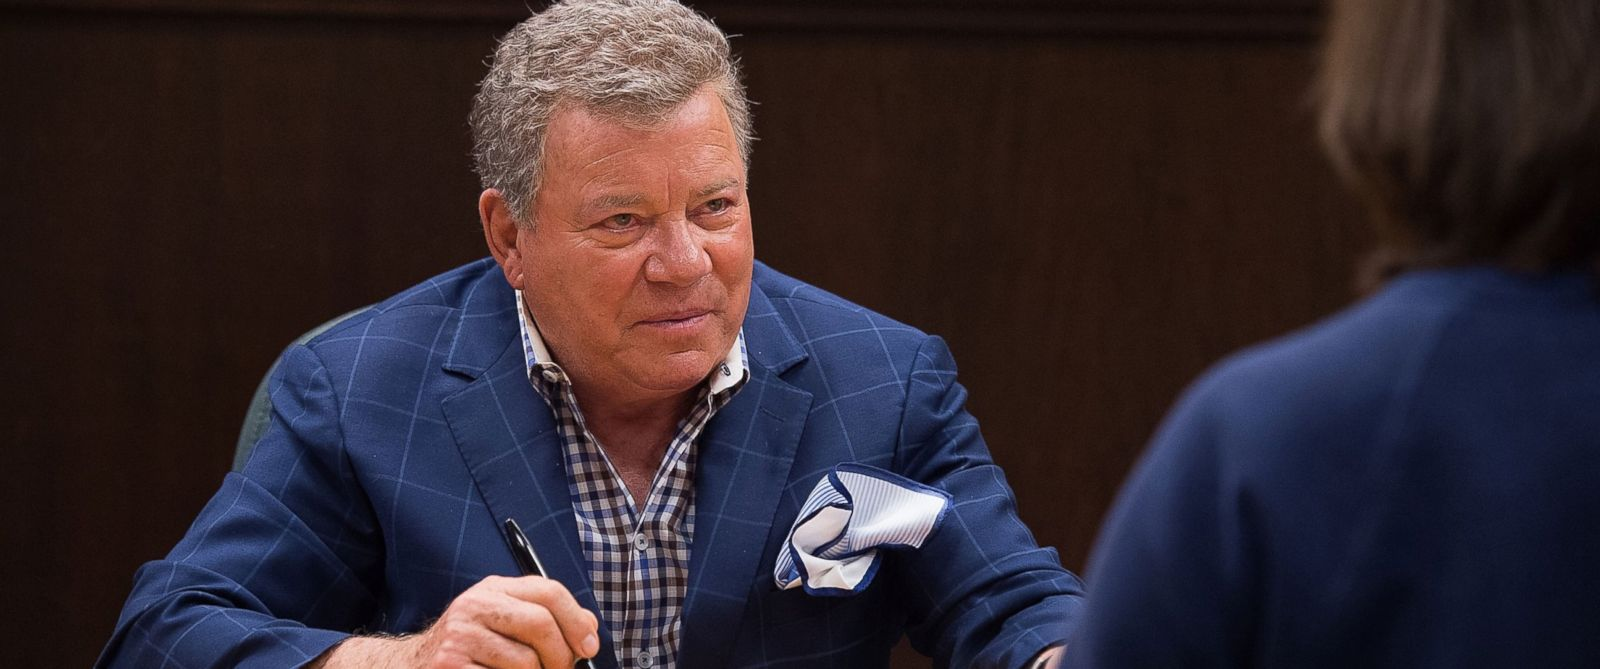 """PHOTO: William Shatner signs his new book """"Leonard: My Fifty-Year Friendship with a Remarkable Man,"""" Feb. 18, 2016 in Los Angeles, California."""